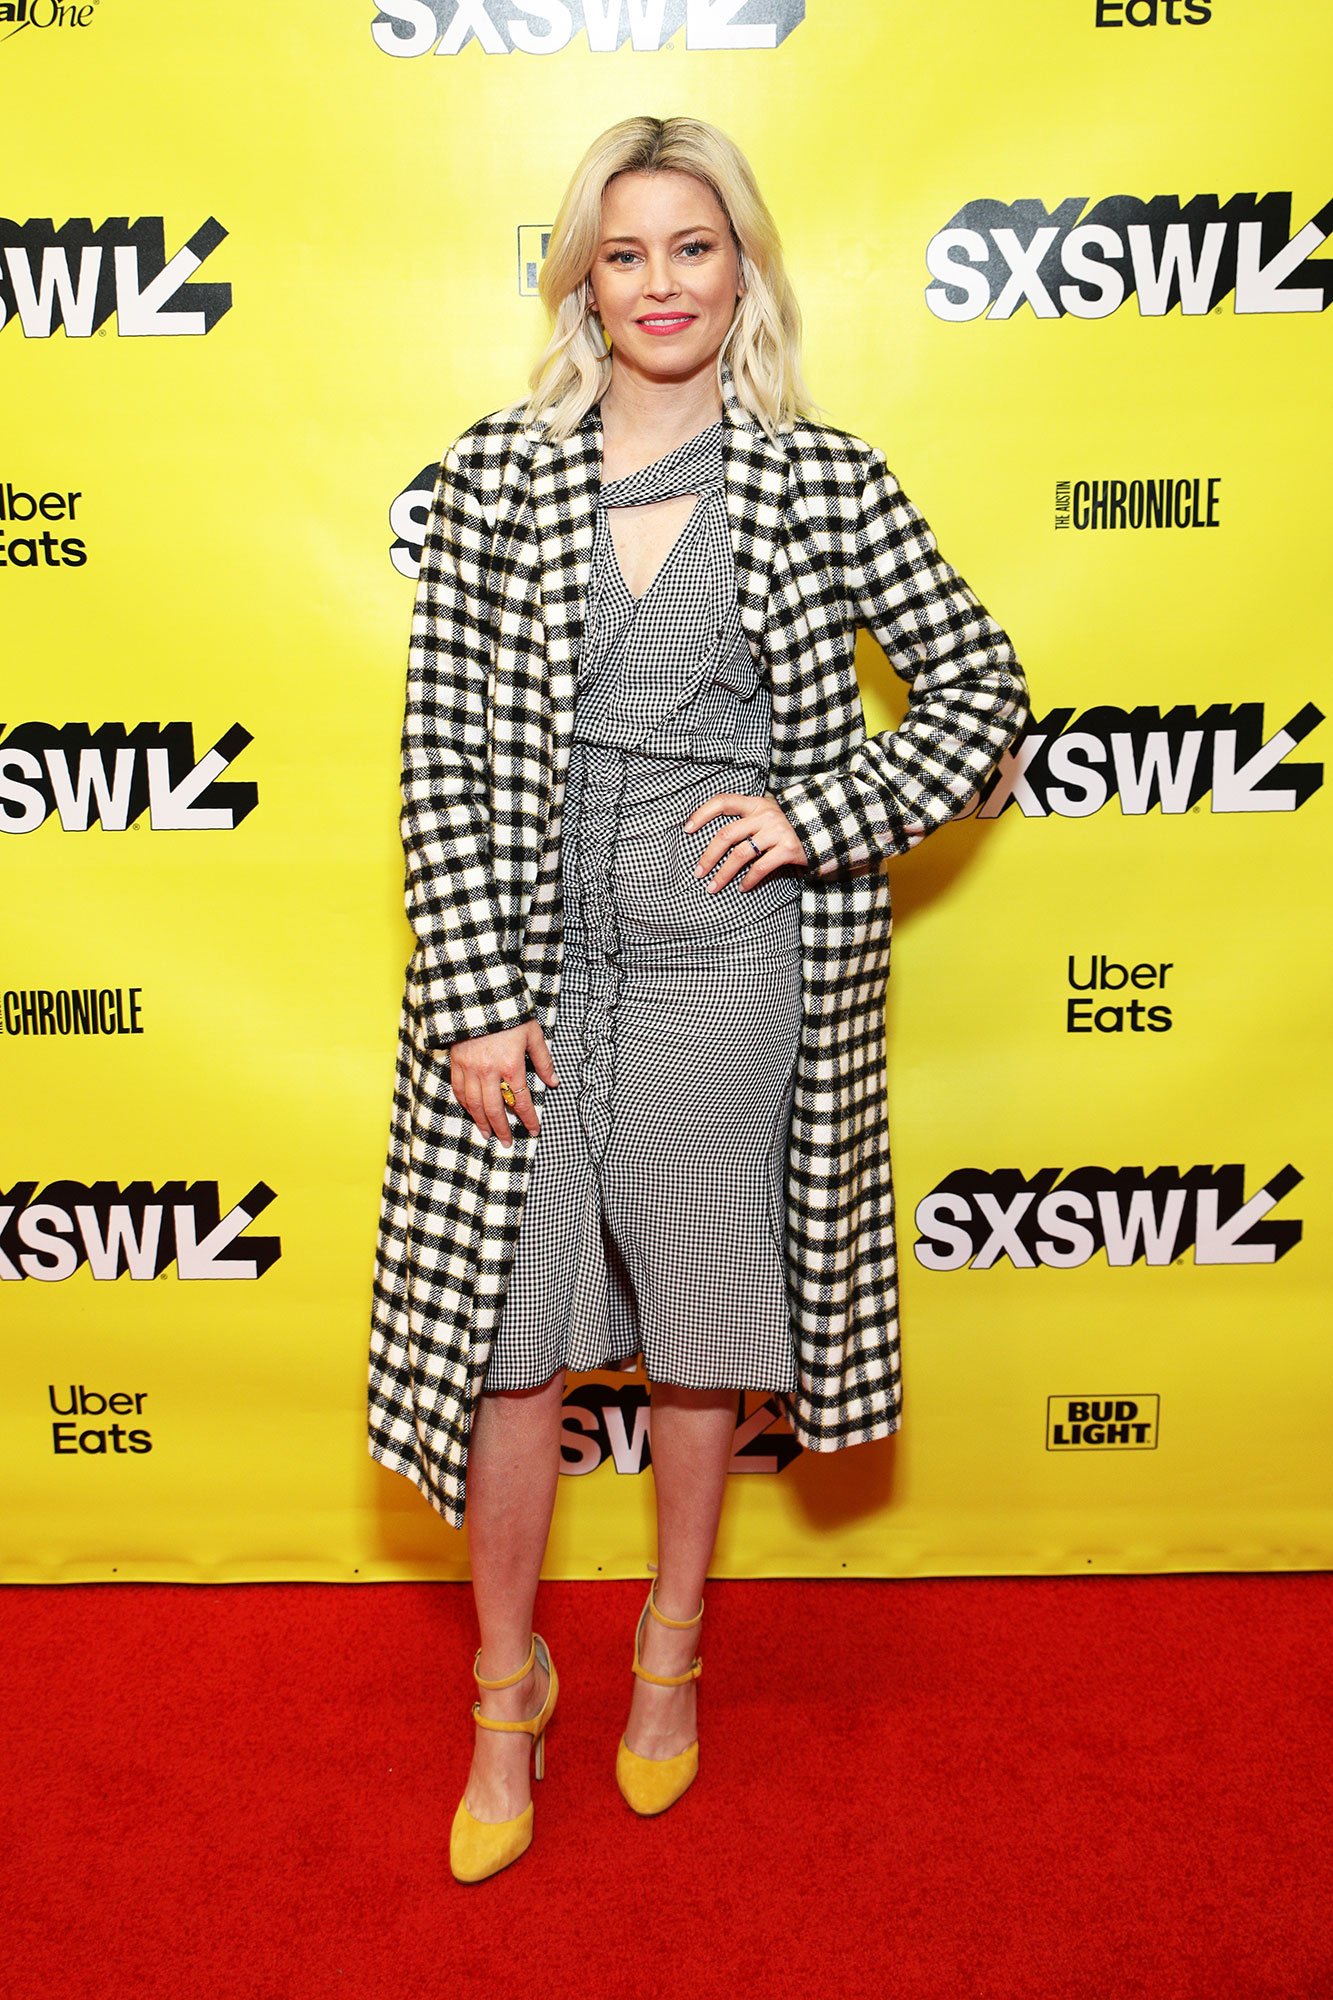 SXSW Is Giving Us Chic Outfit Inspo for Spring - Showing Us all that she's not afraid to mix prints on Monday, March 11, the Pitch Perfect director paired her black and white gingham dress with a larger check coat and yellow heels.